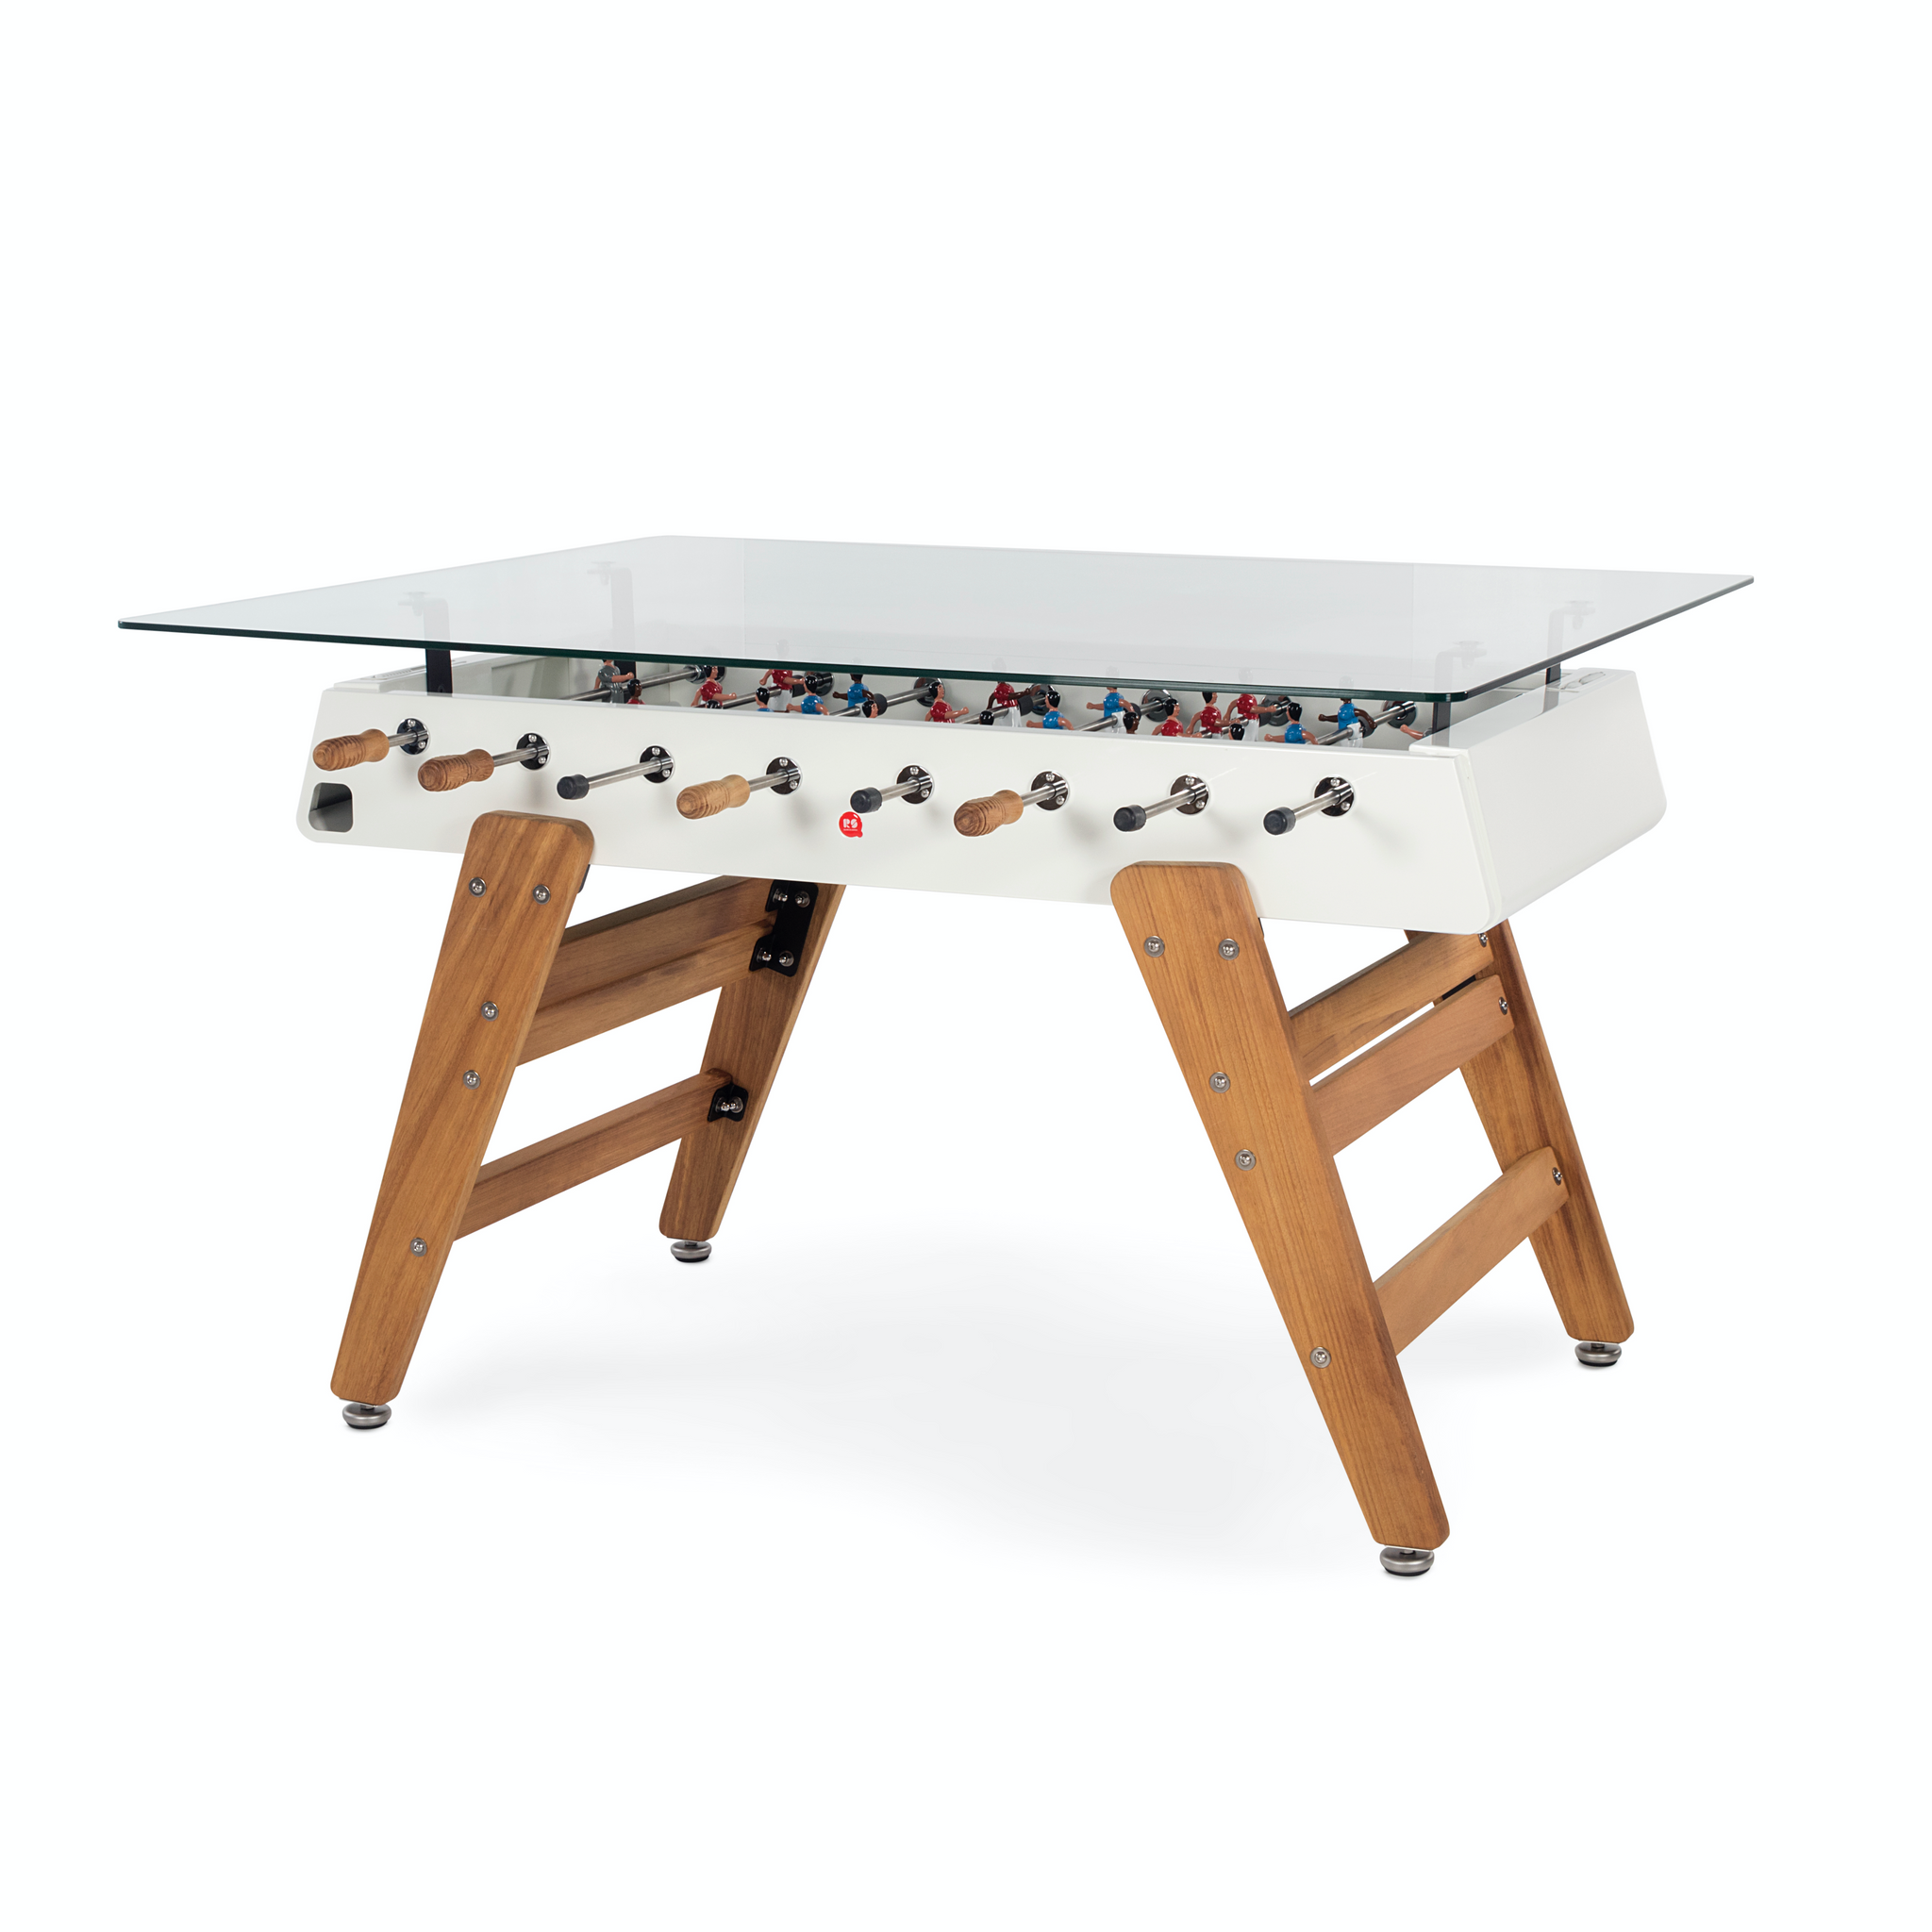 RS3 Wood Dining Rectangle Foosball Table in White